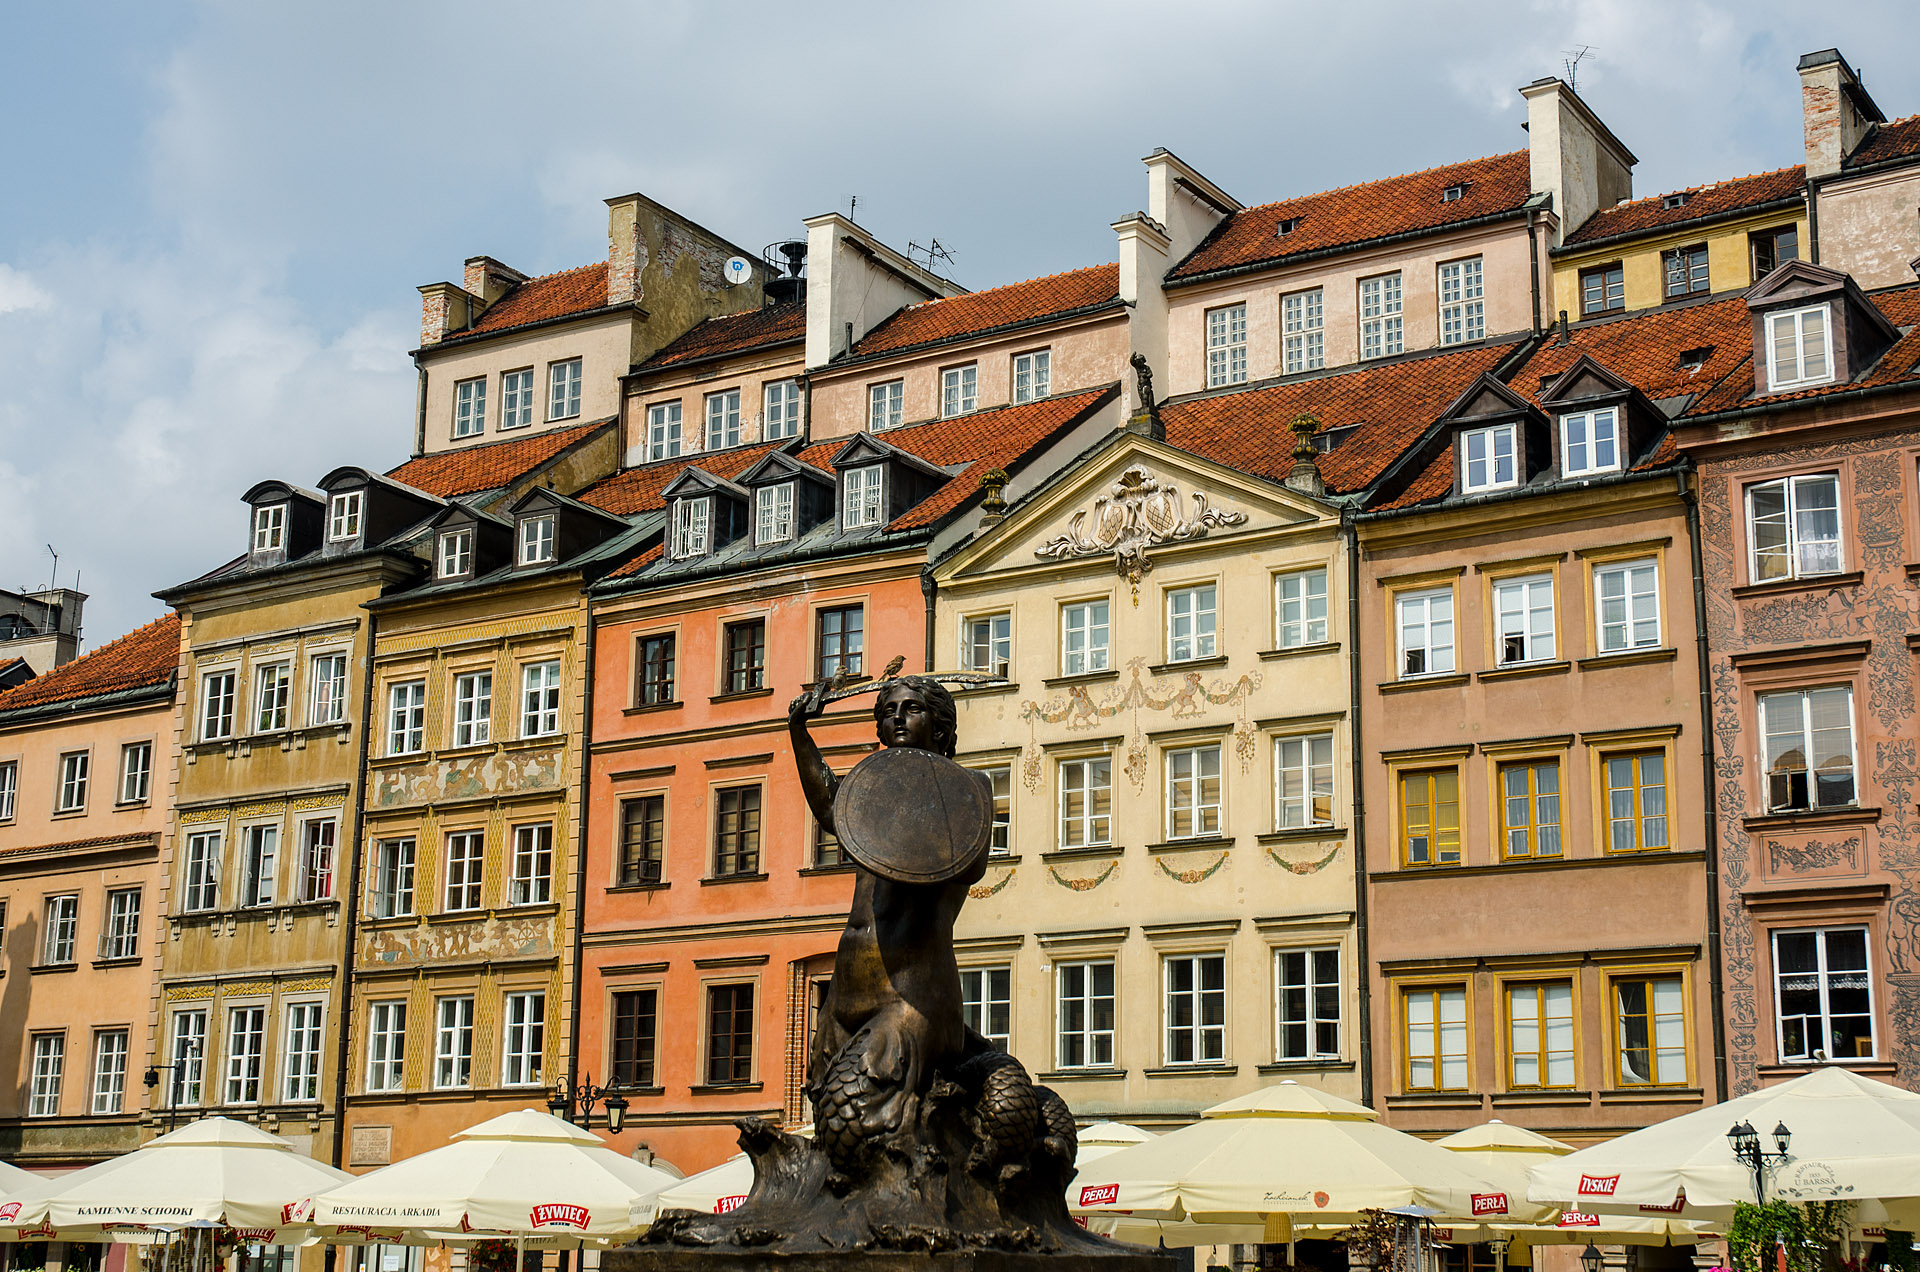 The Mermaid of Warsaw (Old Town Market Place)